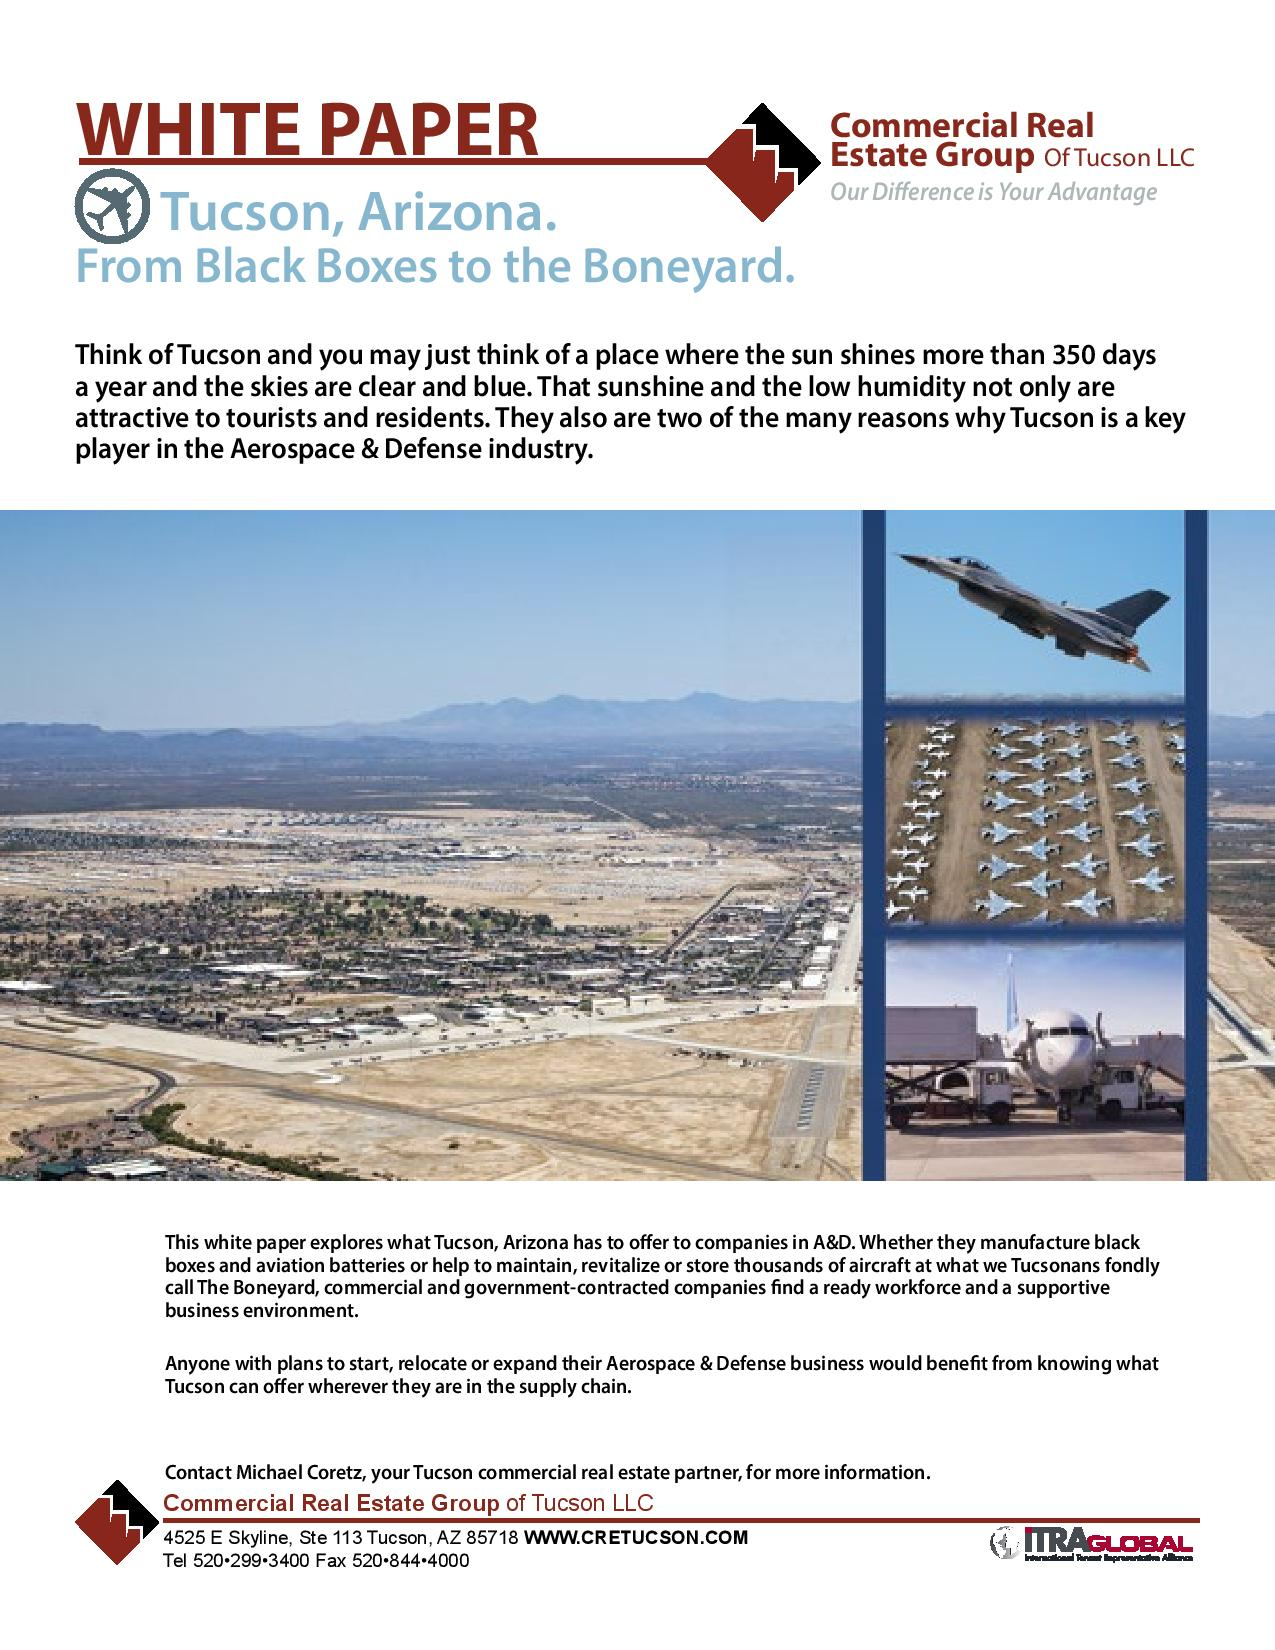 2014 Aerospace & Defence Industrial Market White Paper for Commercial Real Estate Group of Tucson Arizona by Michael Coretz (IMG)